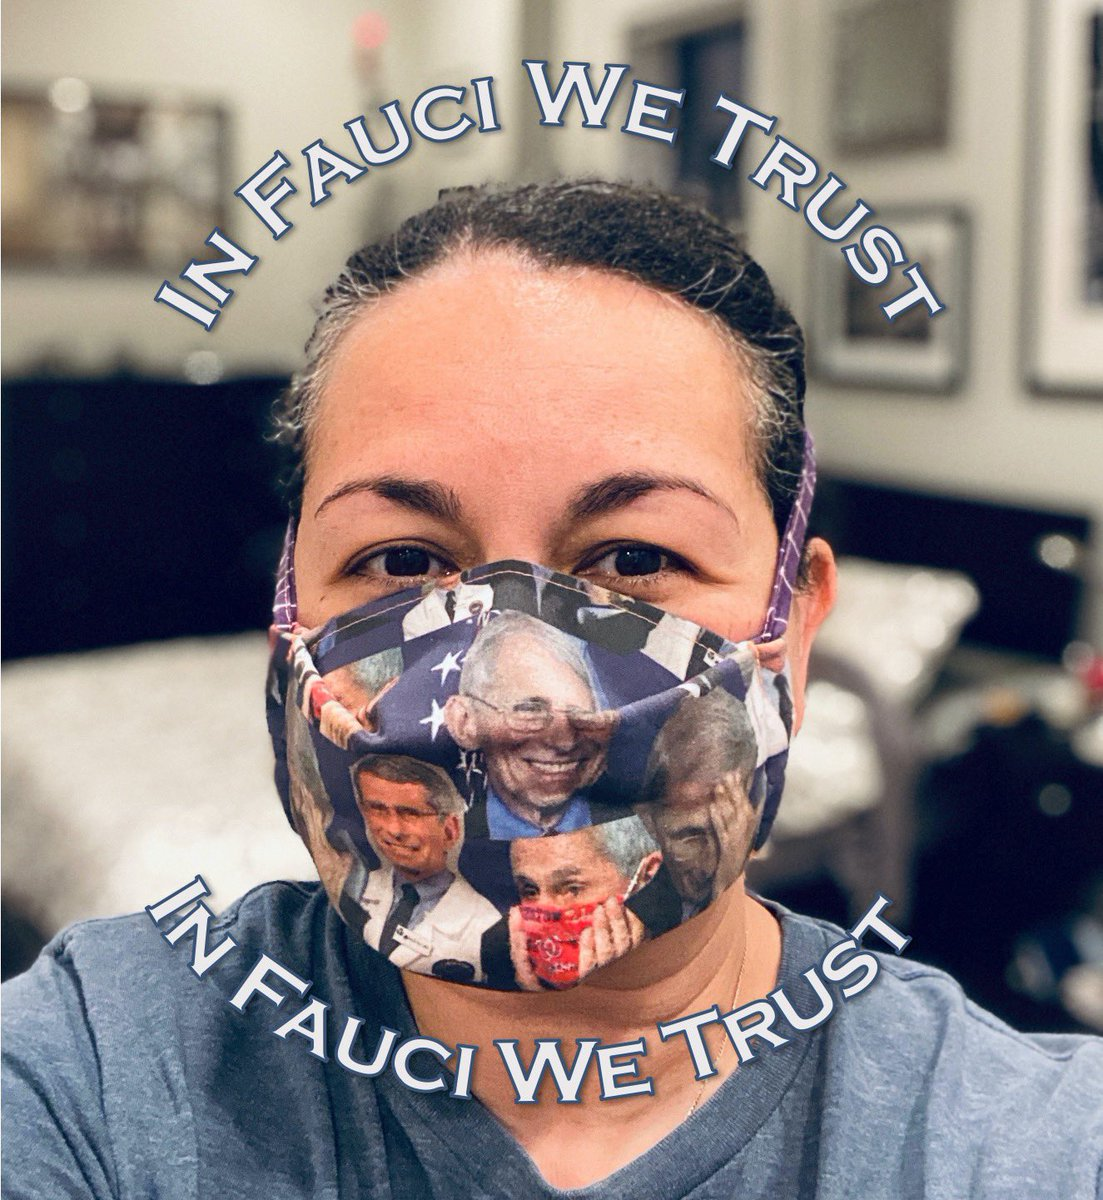 @rocketgirlmd I admire and believe Dr #AnthonyFauci so much that I made a cloth mask of him. #ScienceIsReal #COVID19 https://t.co/G0bw0emmBL